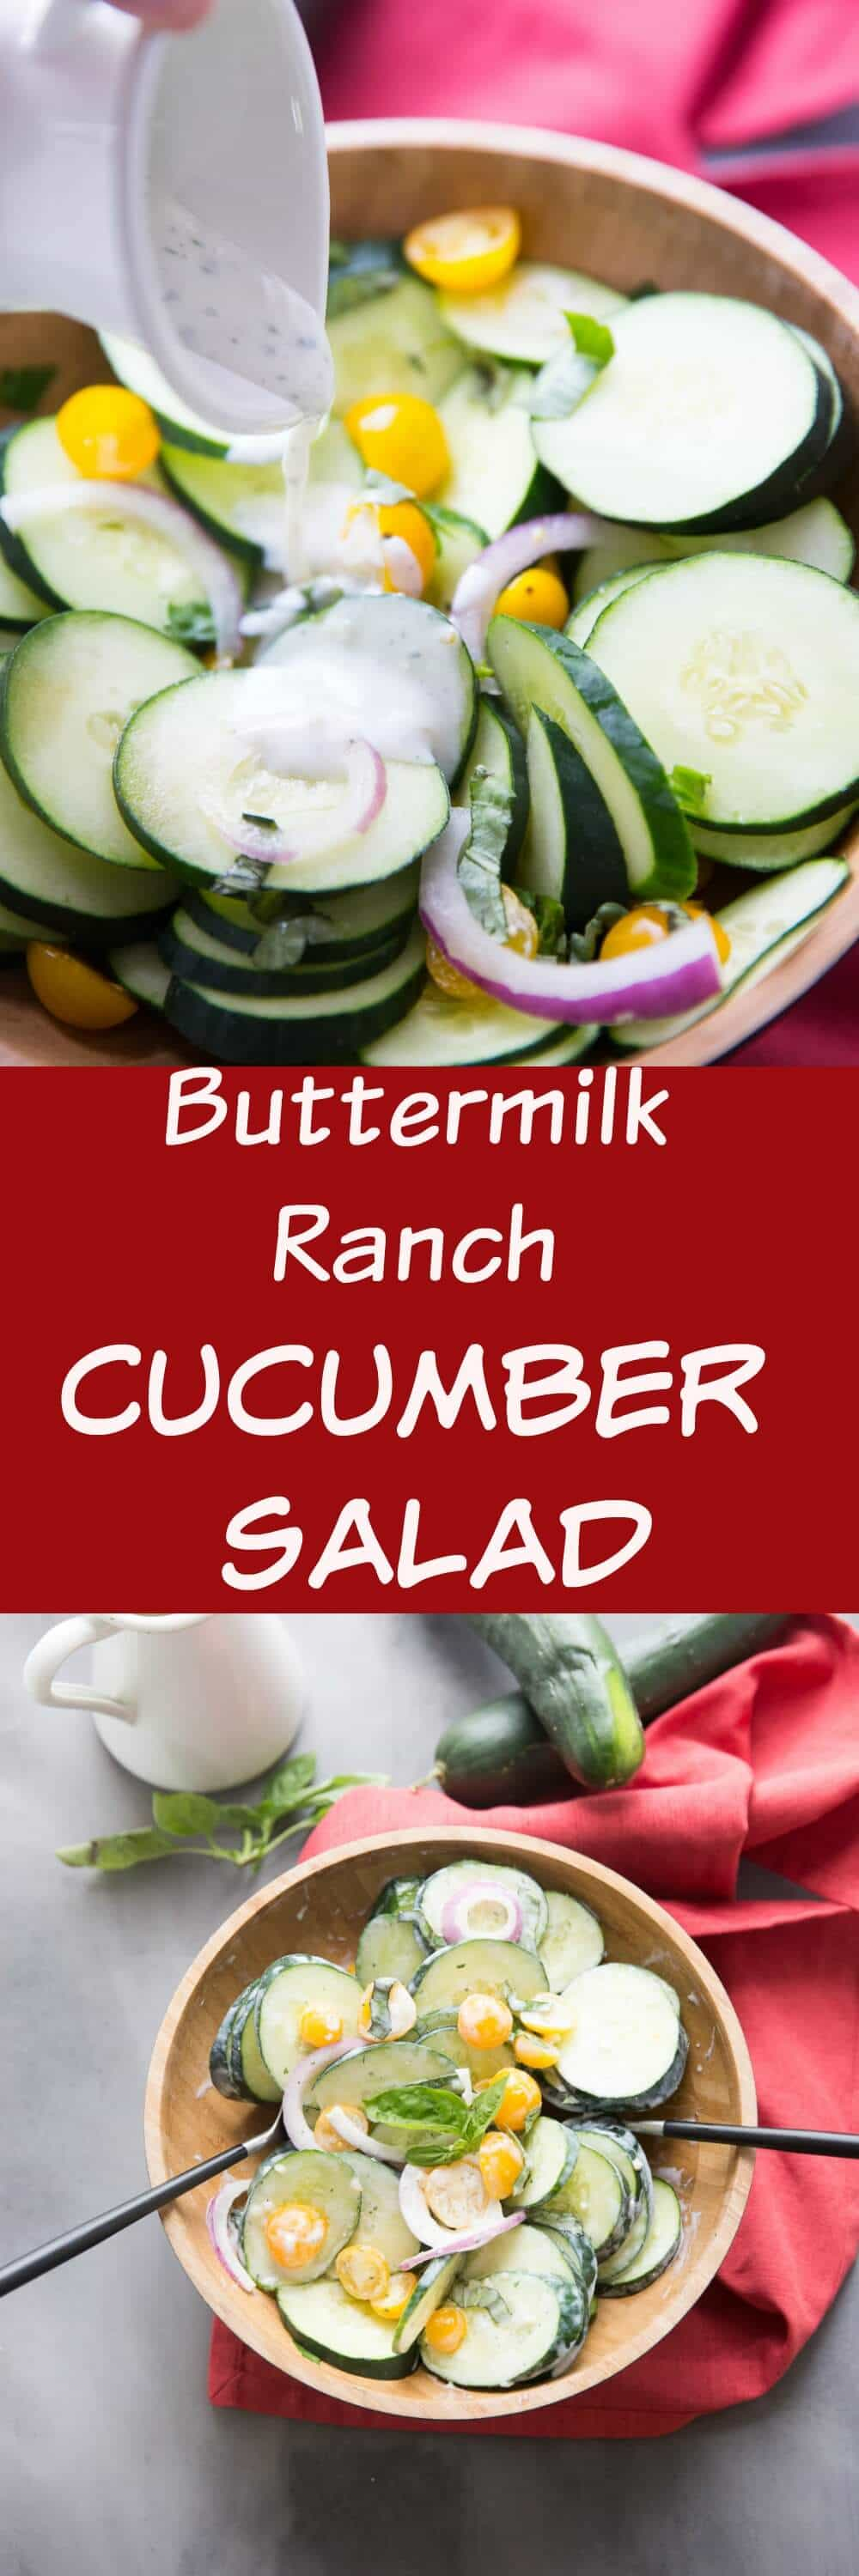 The perfect side to any cookout is the creamy cucumber salad! Fresh produce, a creamy buttermilk ranch dressing is a refreshing and simple side!